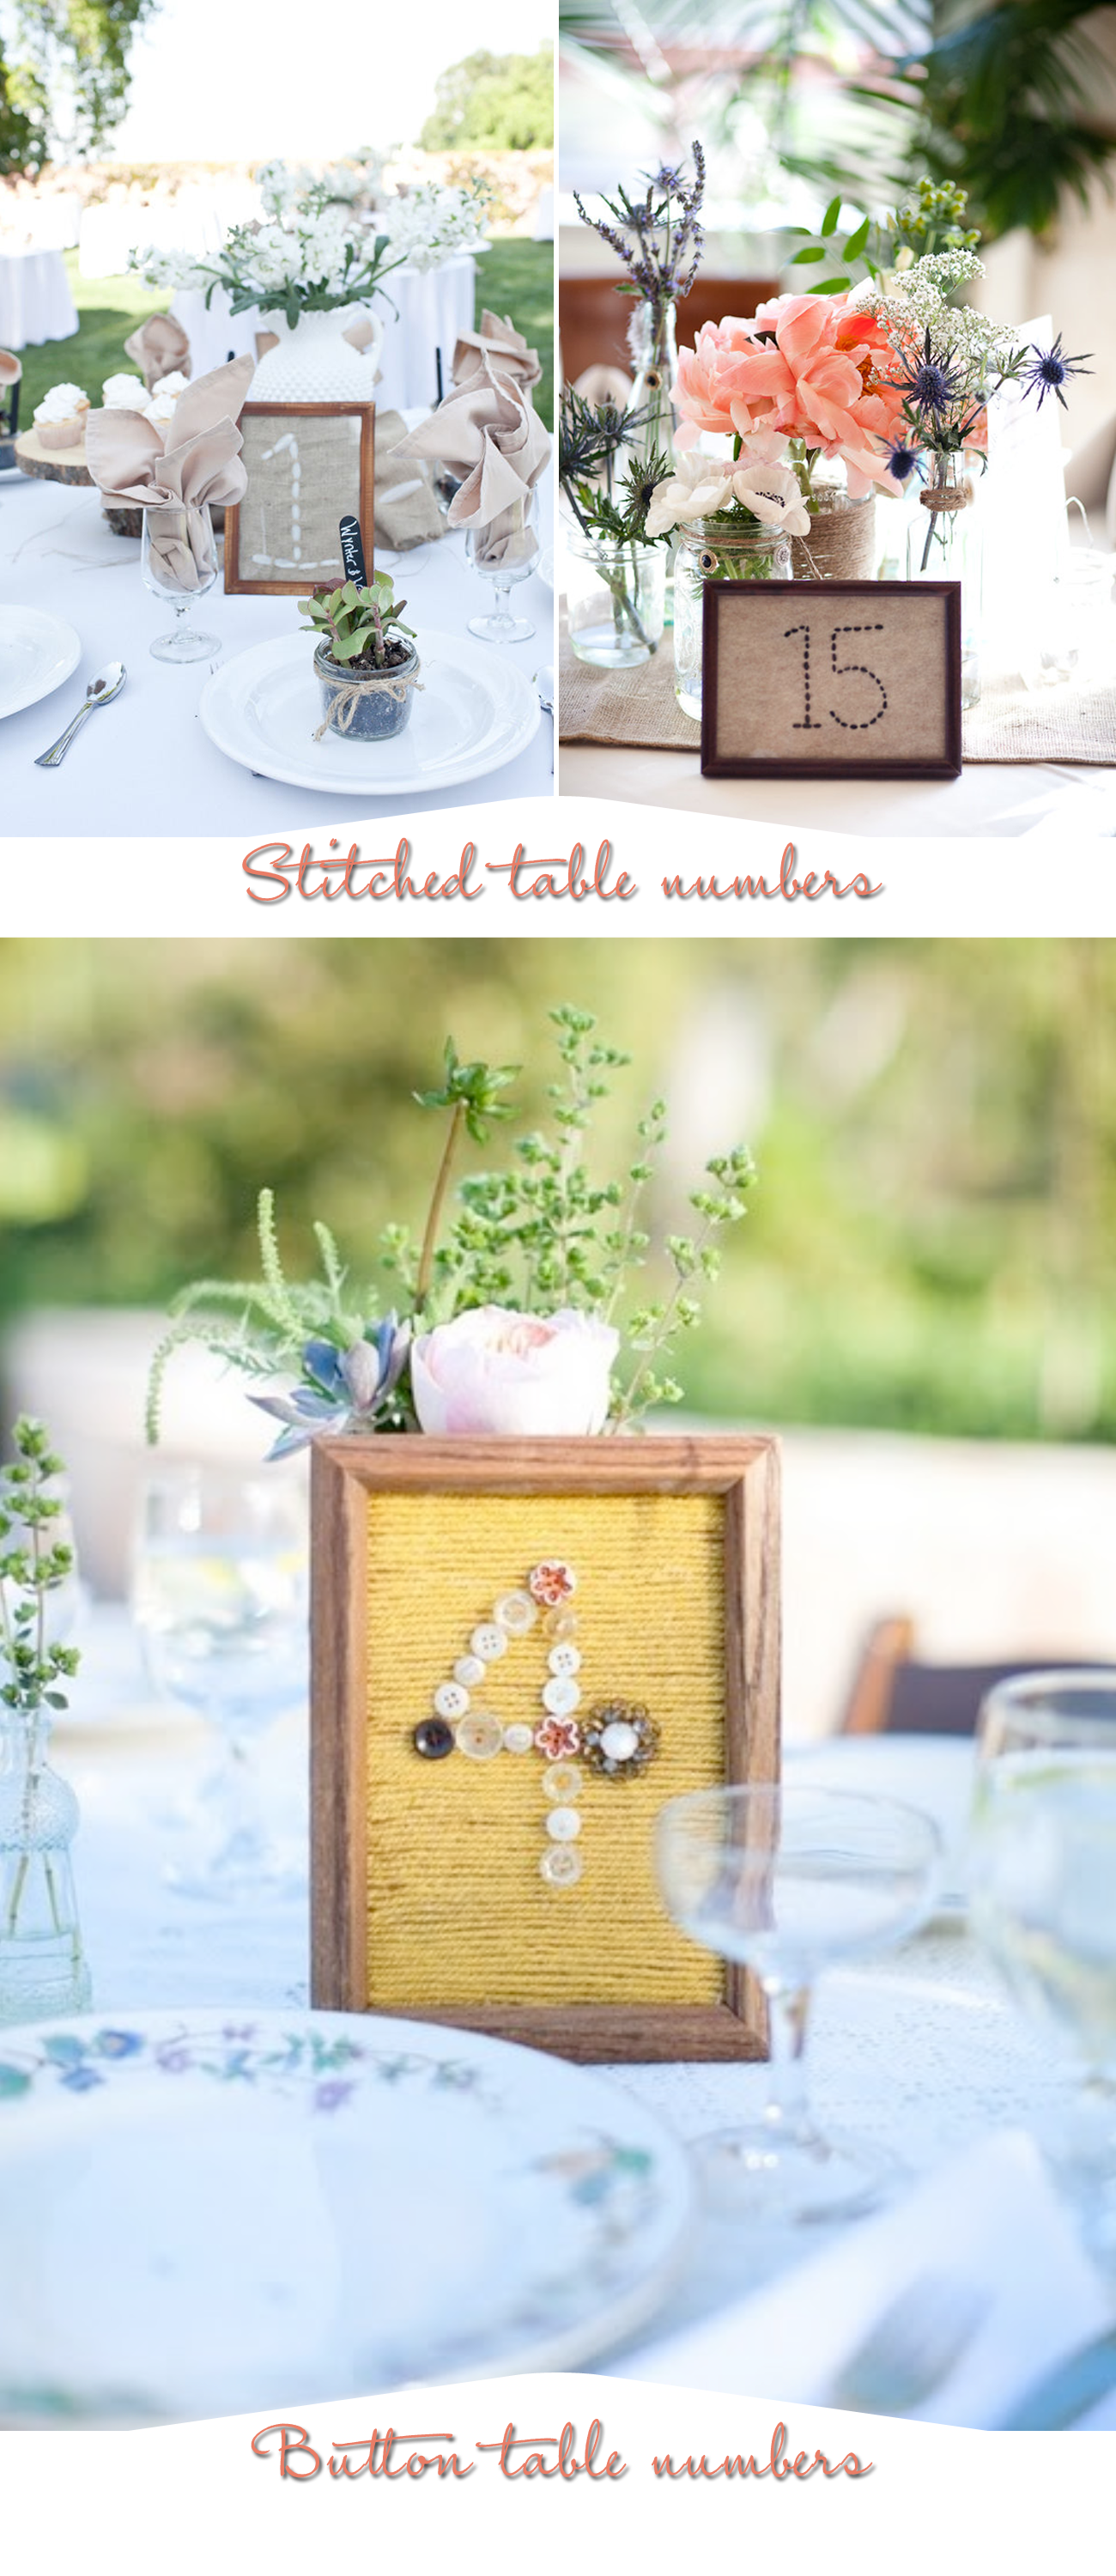 Creative Diy Wedding Ideas : Unique wedding guestbook ideas homespun diy onewed